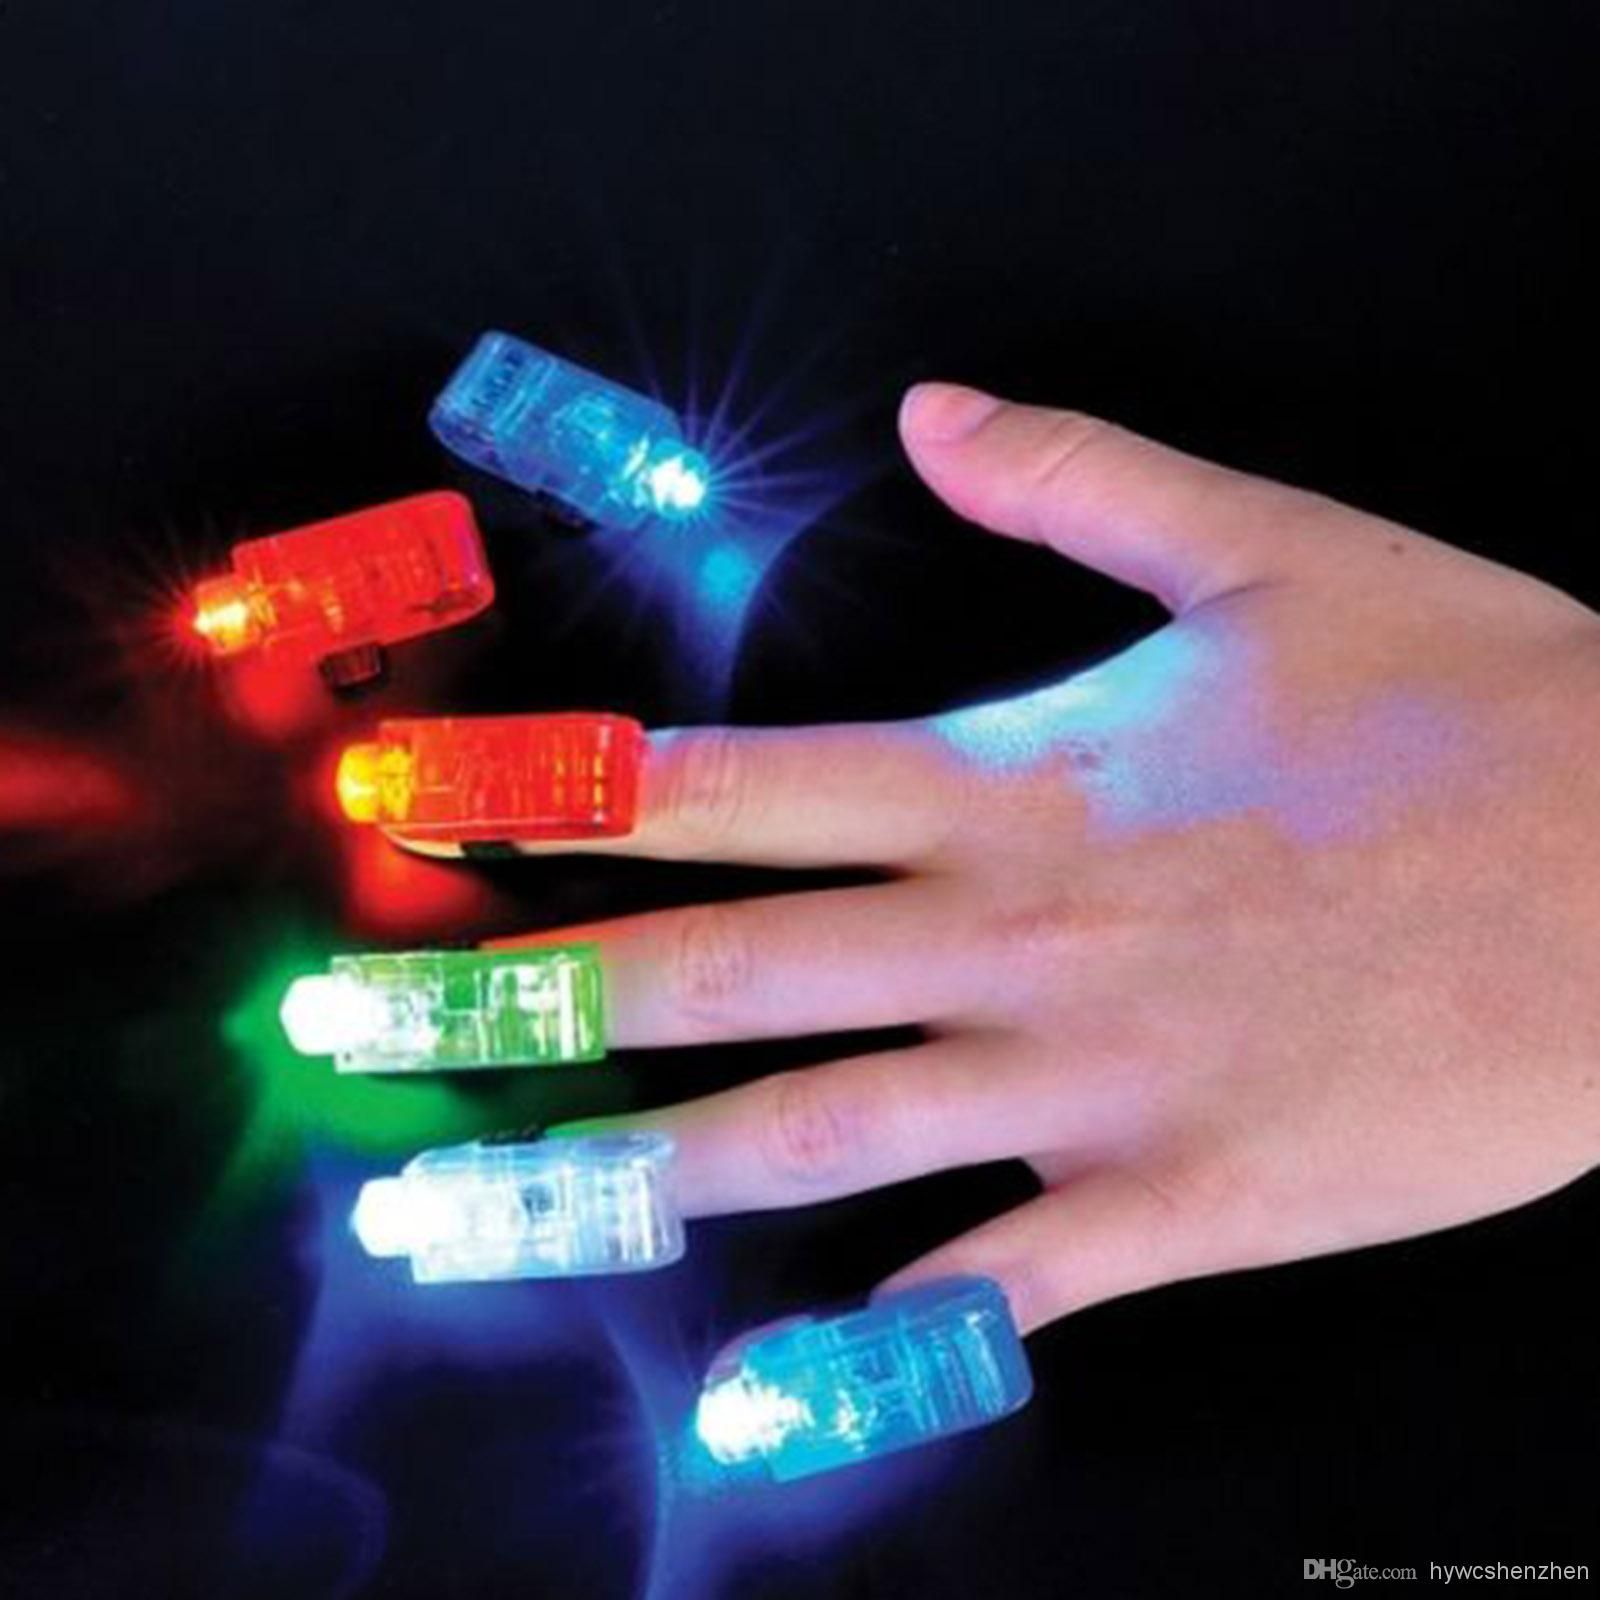 Wholesale LED Light - Buy 10 X LED Finger Fun Gadget Finger Beams LED Light Stocking Filler Party Gift, $5.99 | DHgate